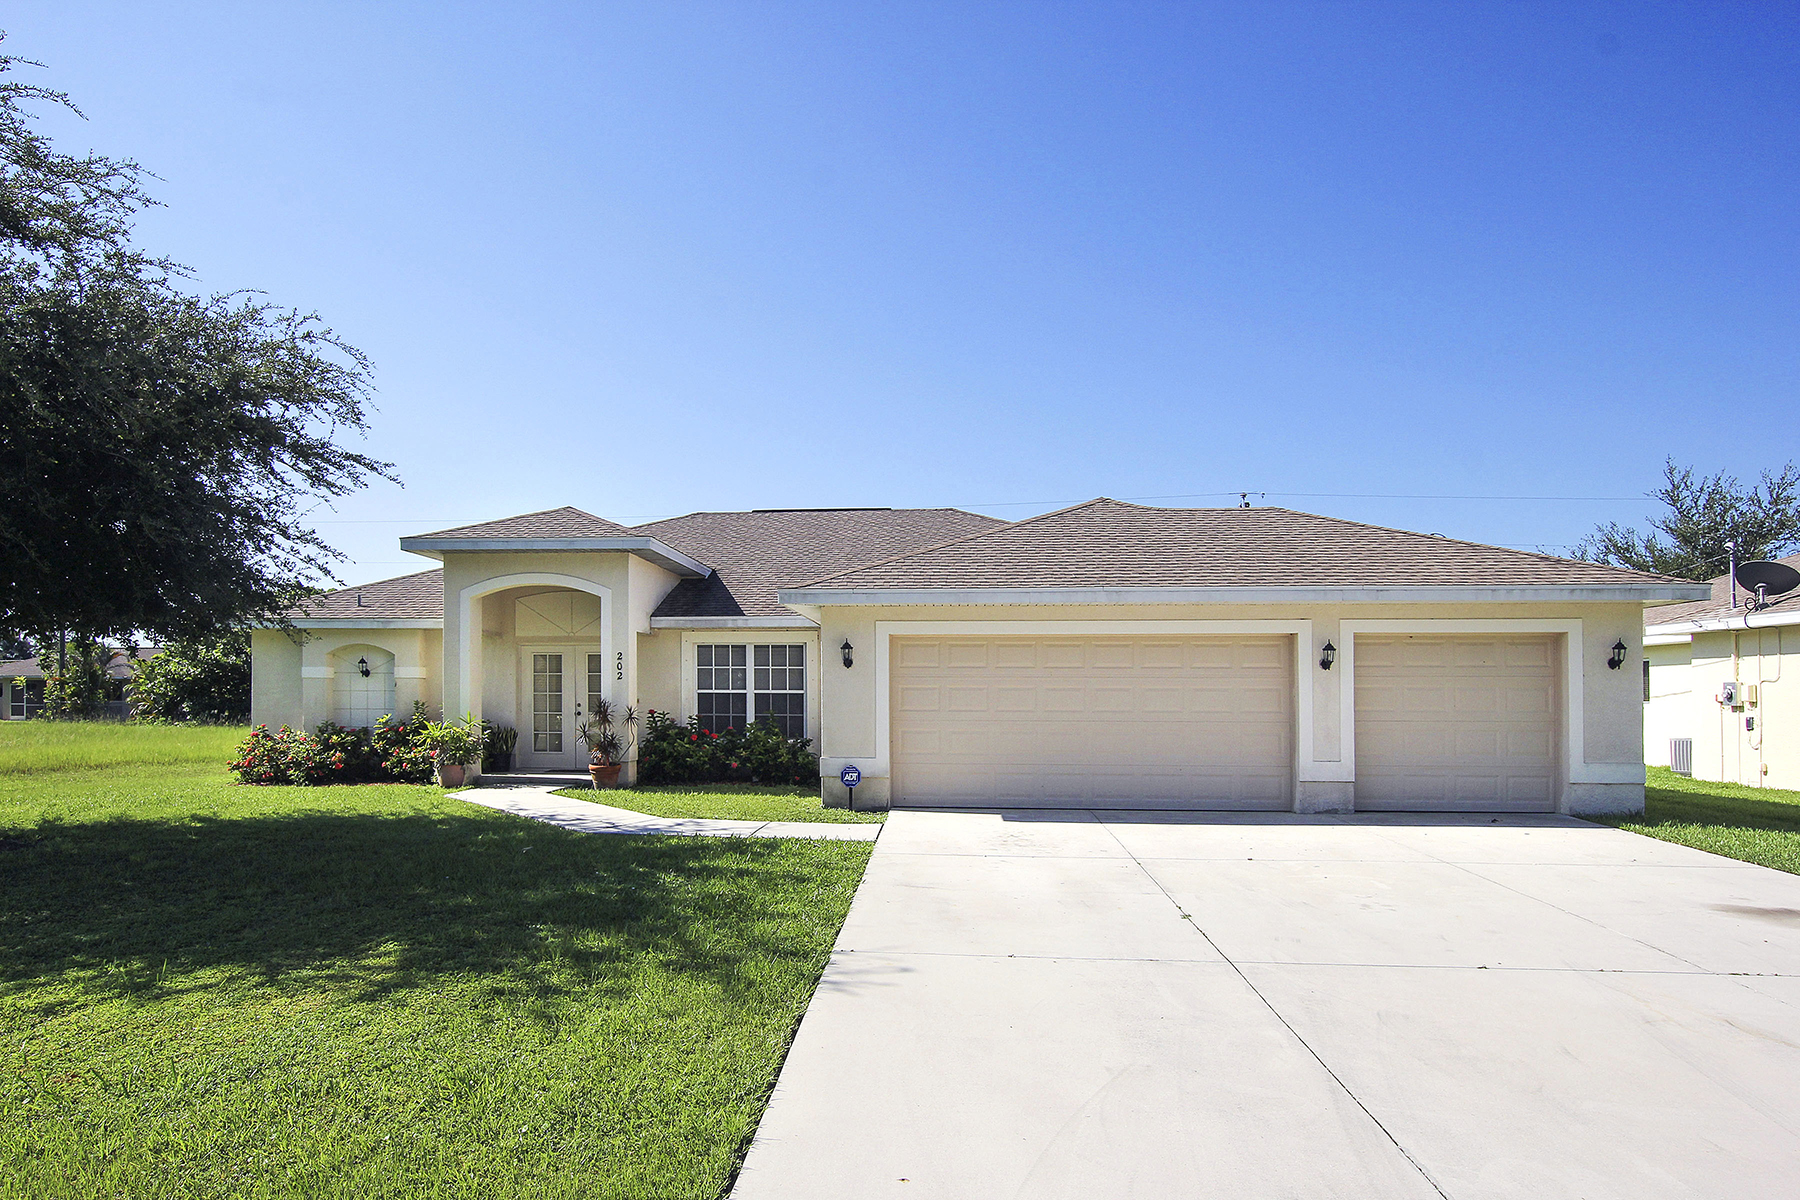 Single Family Home for Sale at CAPE CORAL 202 SE 23rd Cape Coral, 33990 United States